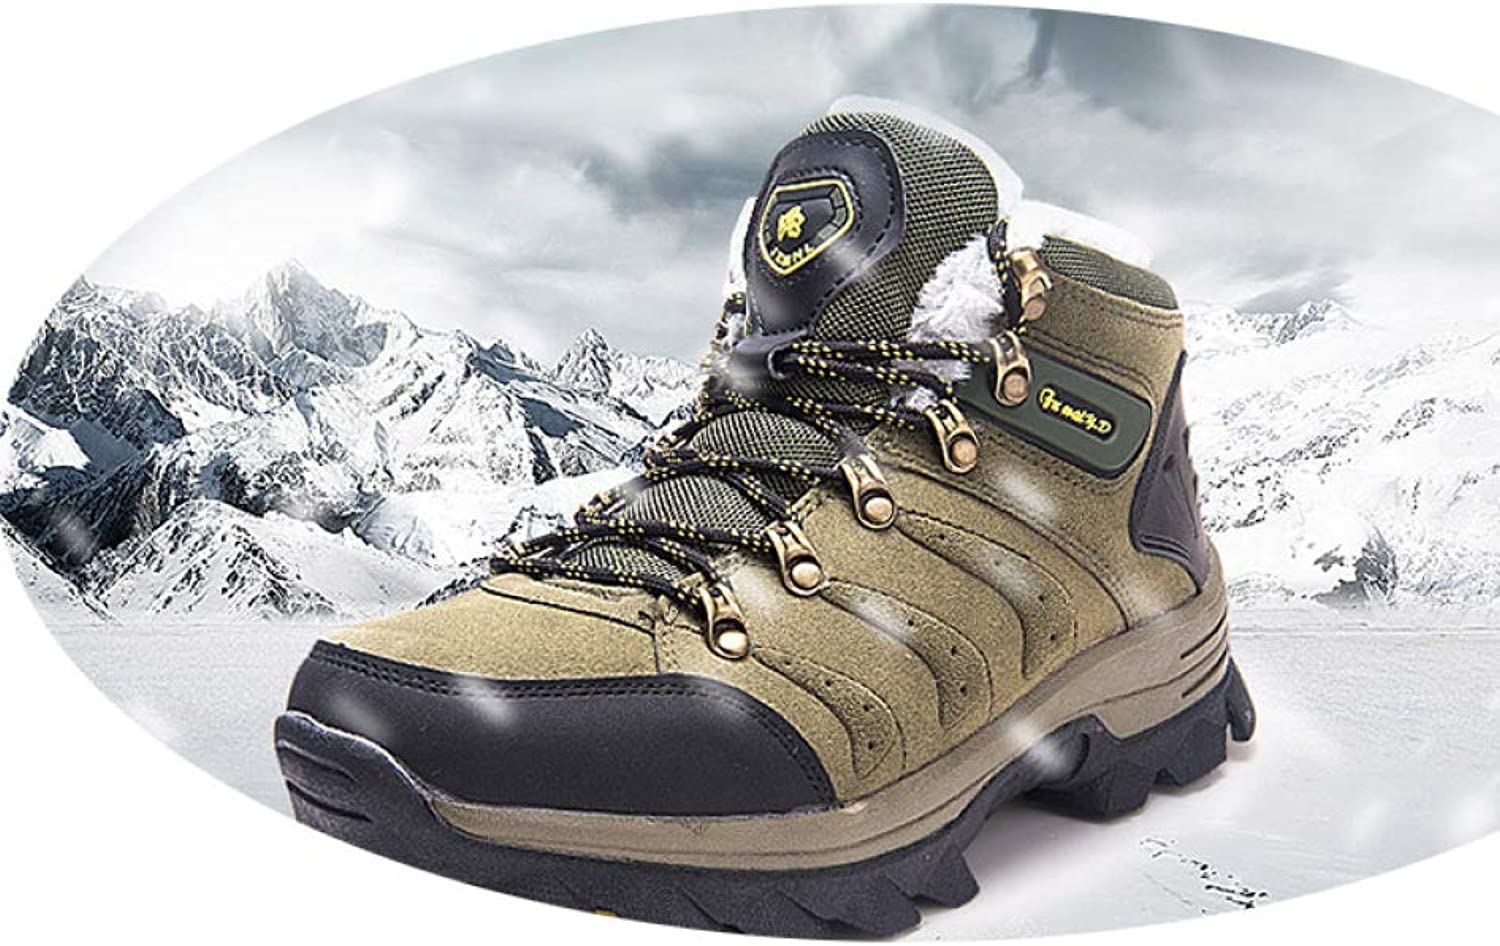 shoes Winter Outdoor Hiking, Youth Fashion Casual, Men's Running Women, Non-Slip, Outdoor Travel